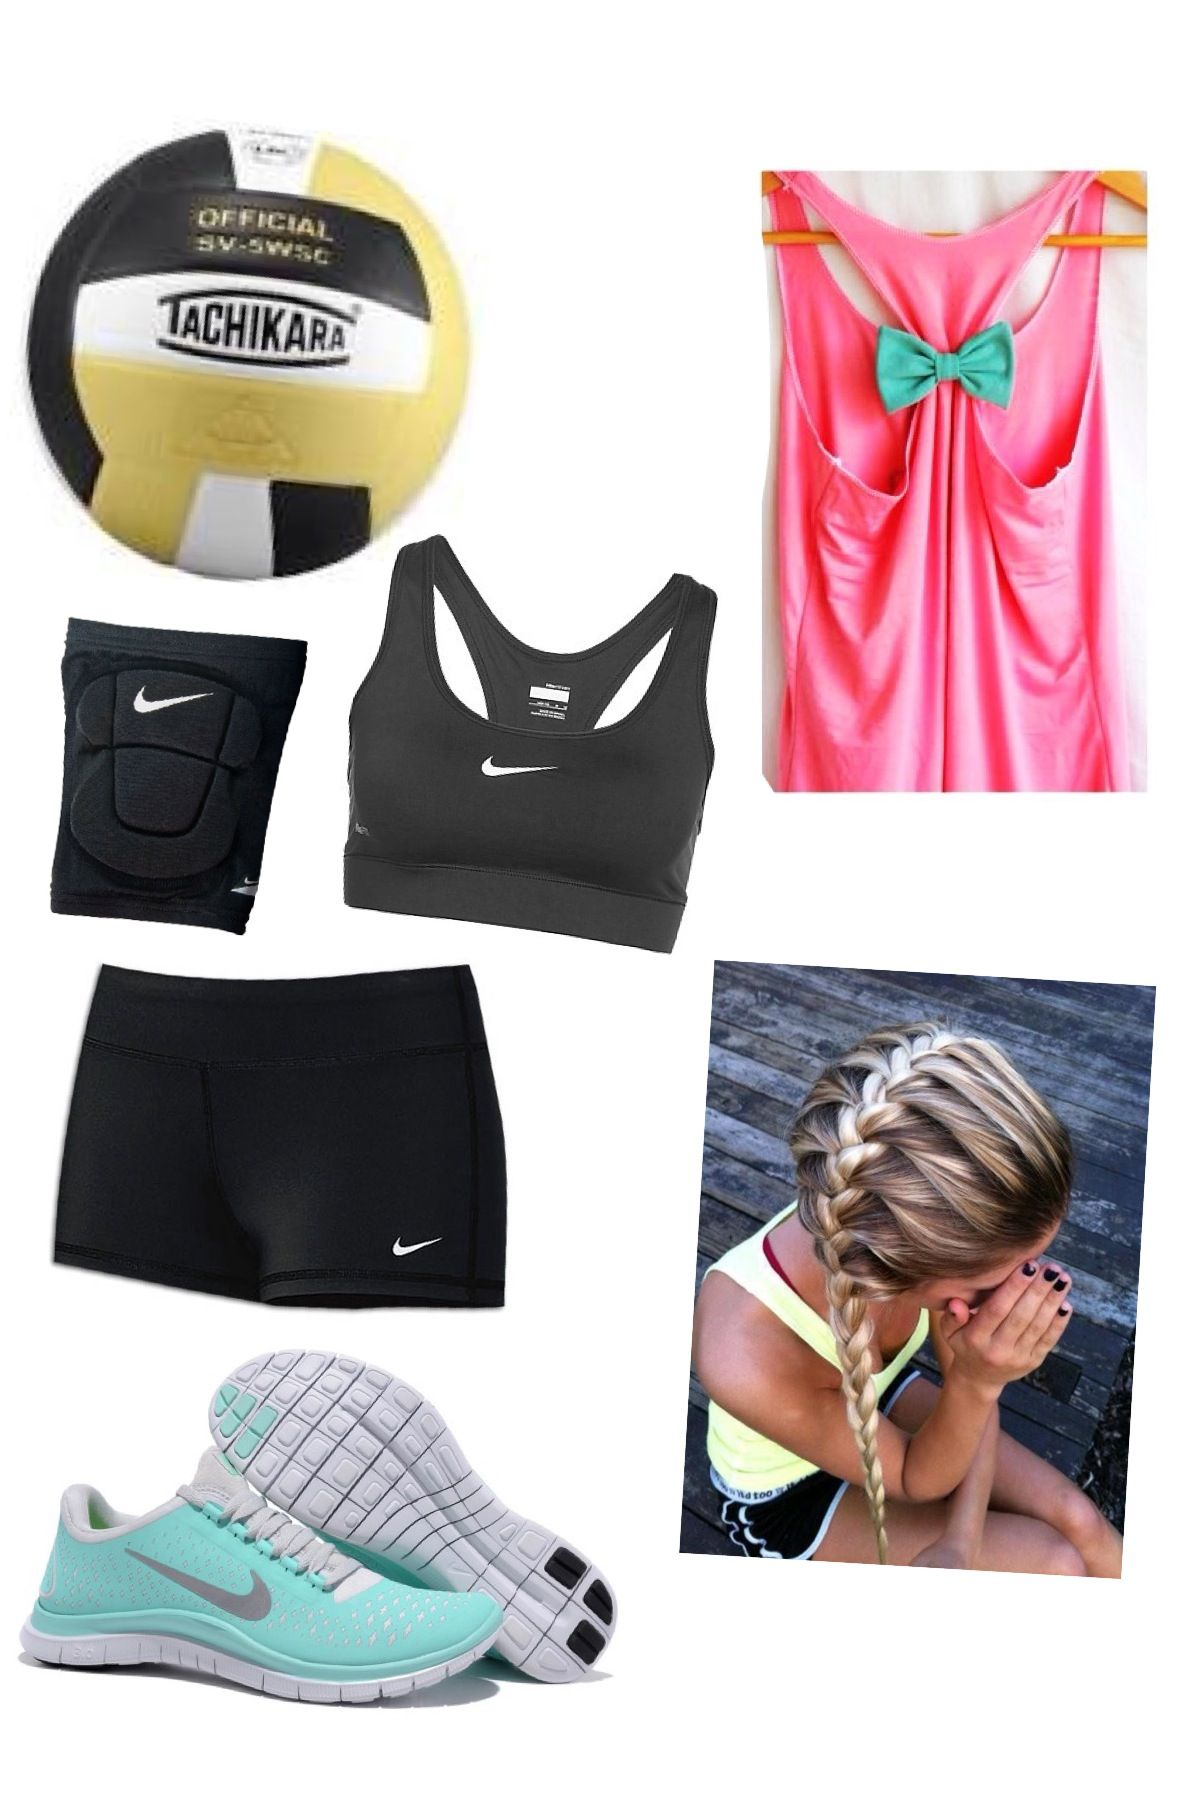 Pin By Laura Gulledge On Clothes Accessories Volleyball Outfits Volleyball Practice Practice Outfits